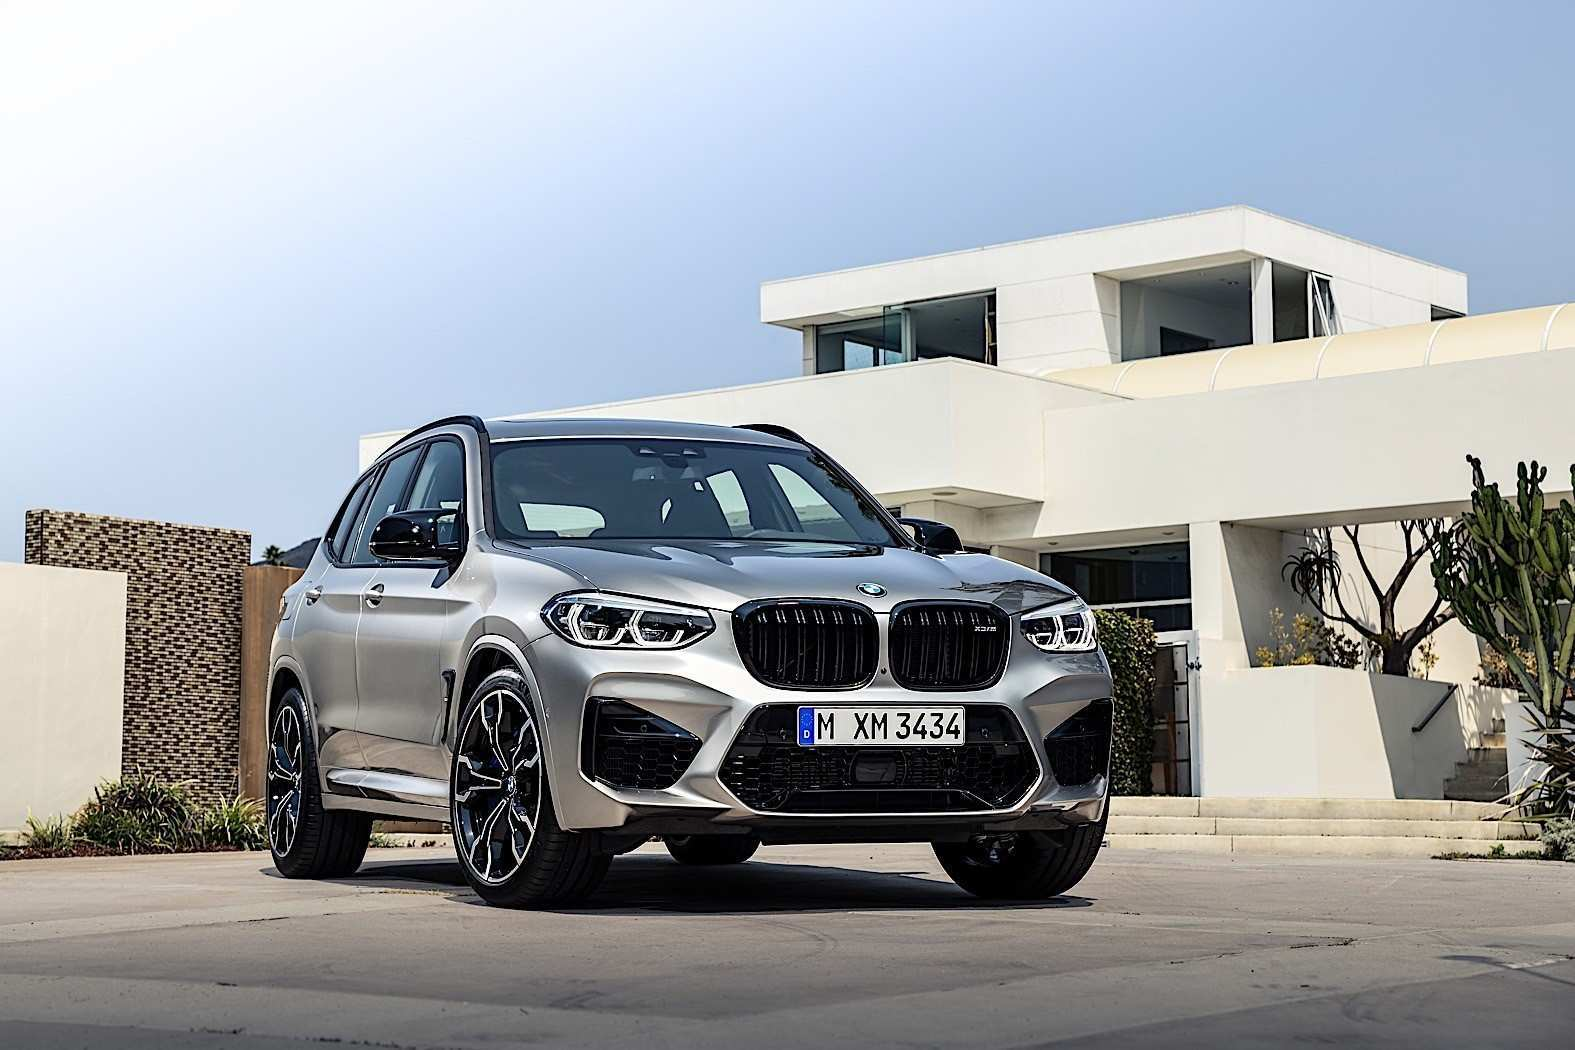 67 Great 2020 BMW X3M Ordering Guide Concept for 2020 BMW X3M Ordering Guide